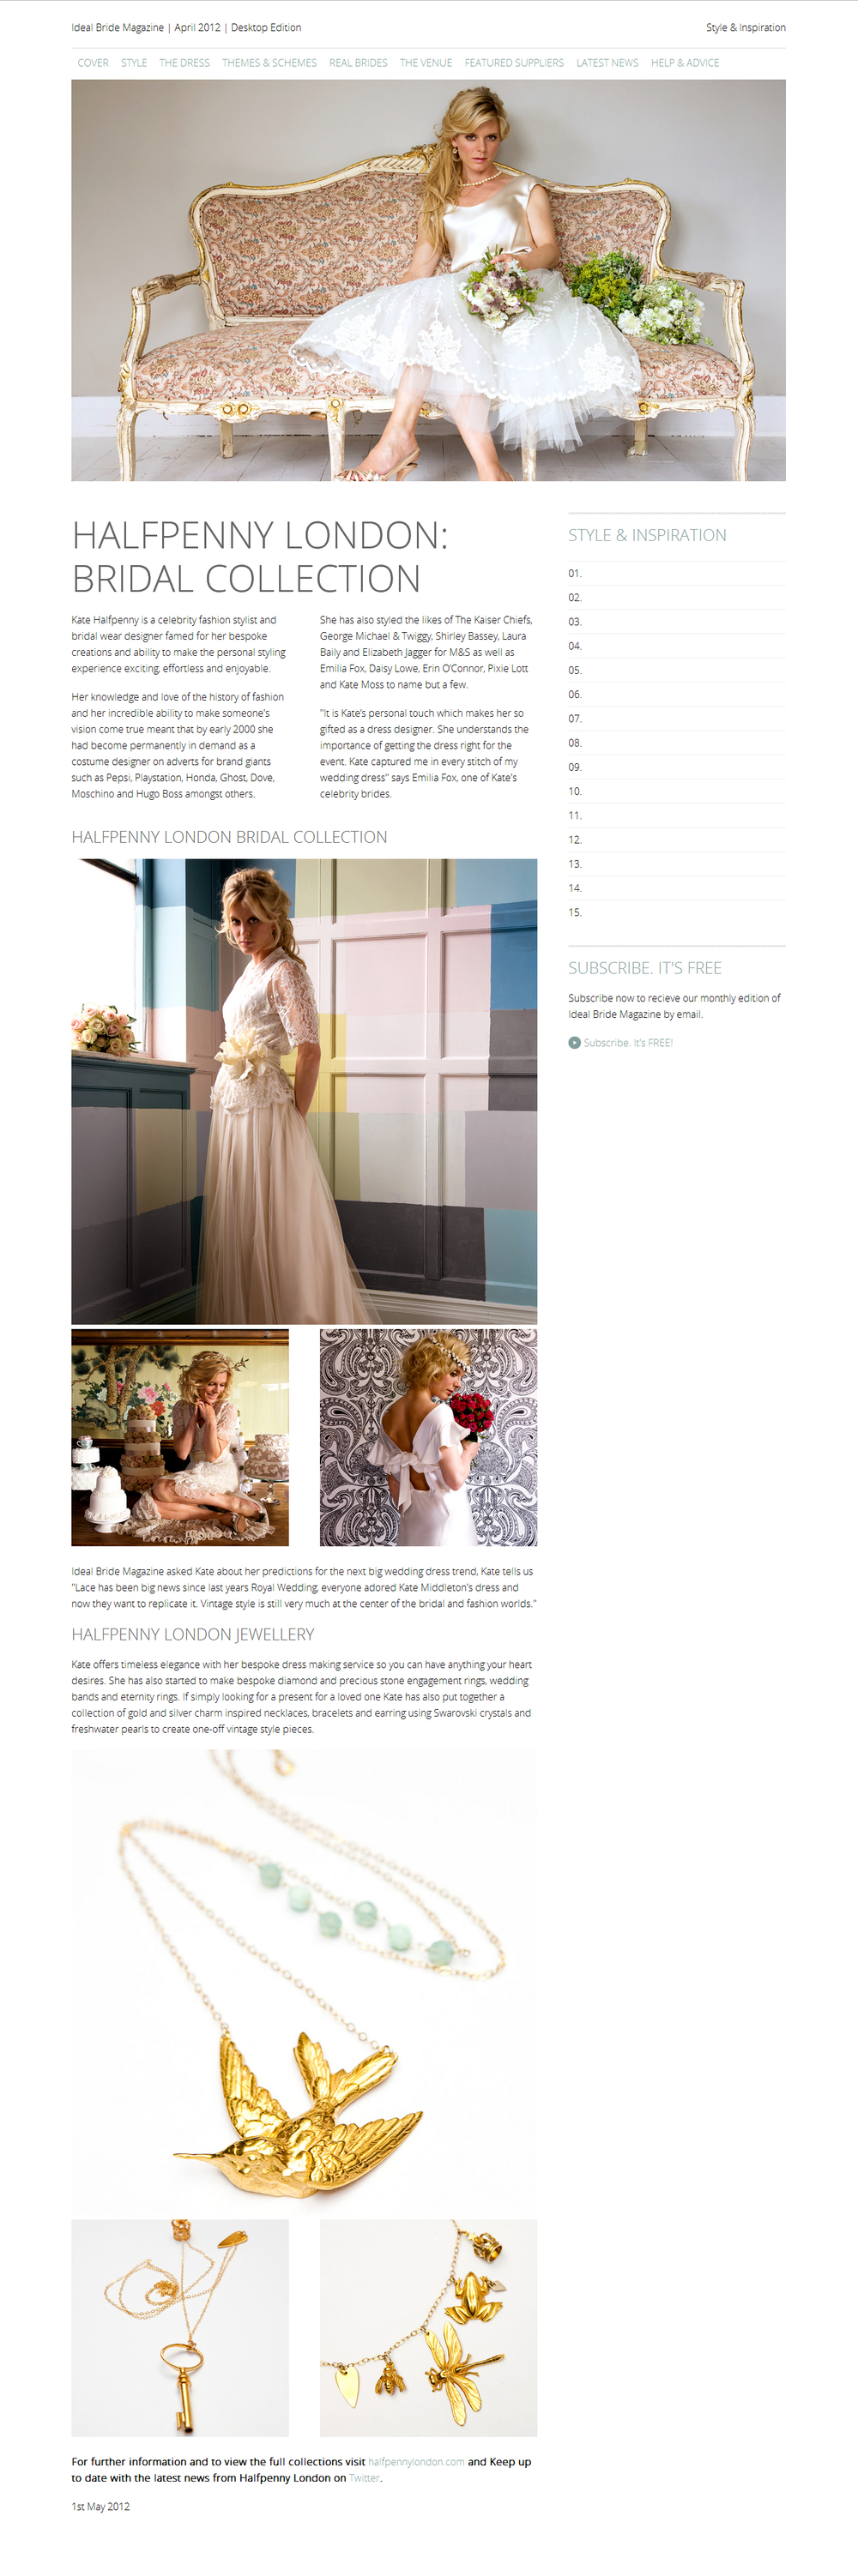 16 2012-05-01-halfpenny-london-bridal-collection copy.jpg